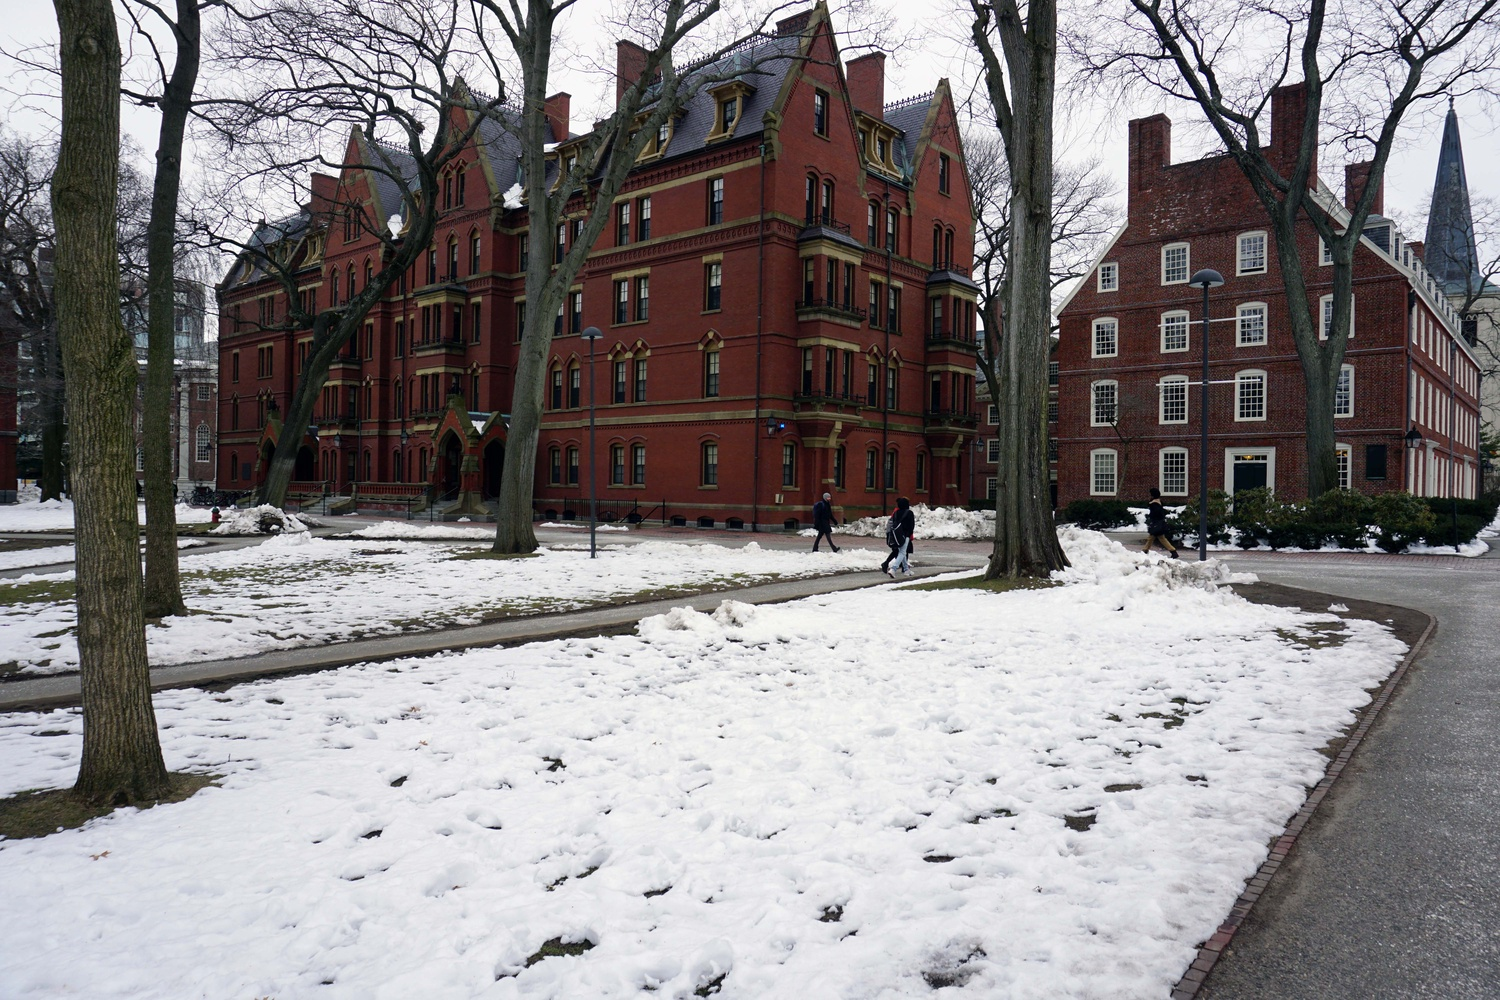 With a week of cold temperatures, Harvard Yard is still covered in frozen snow despite the onset of spring.